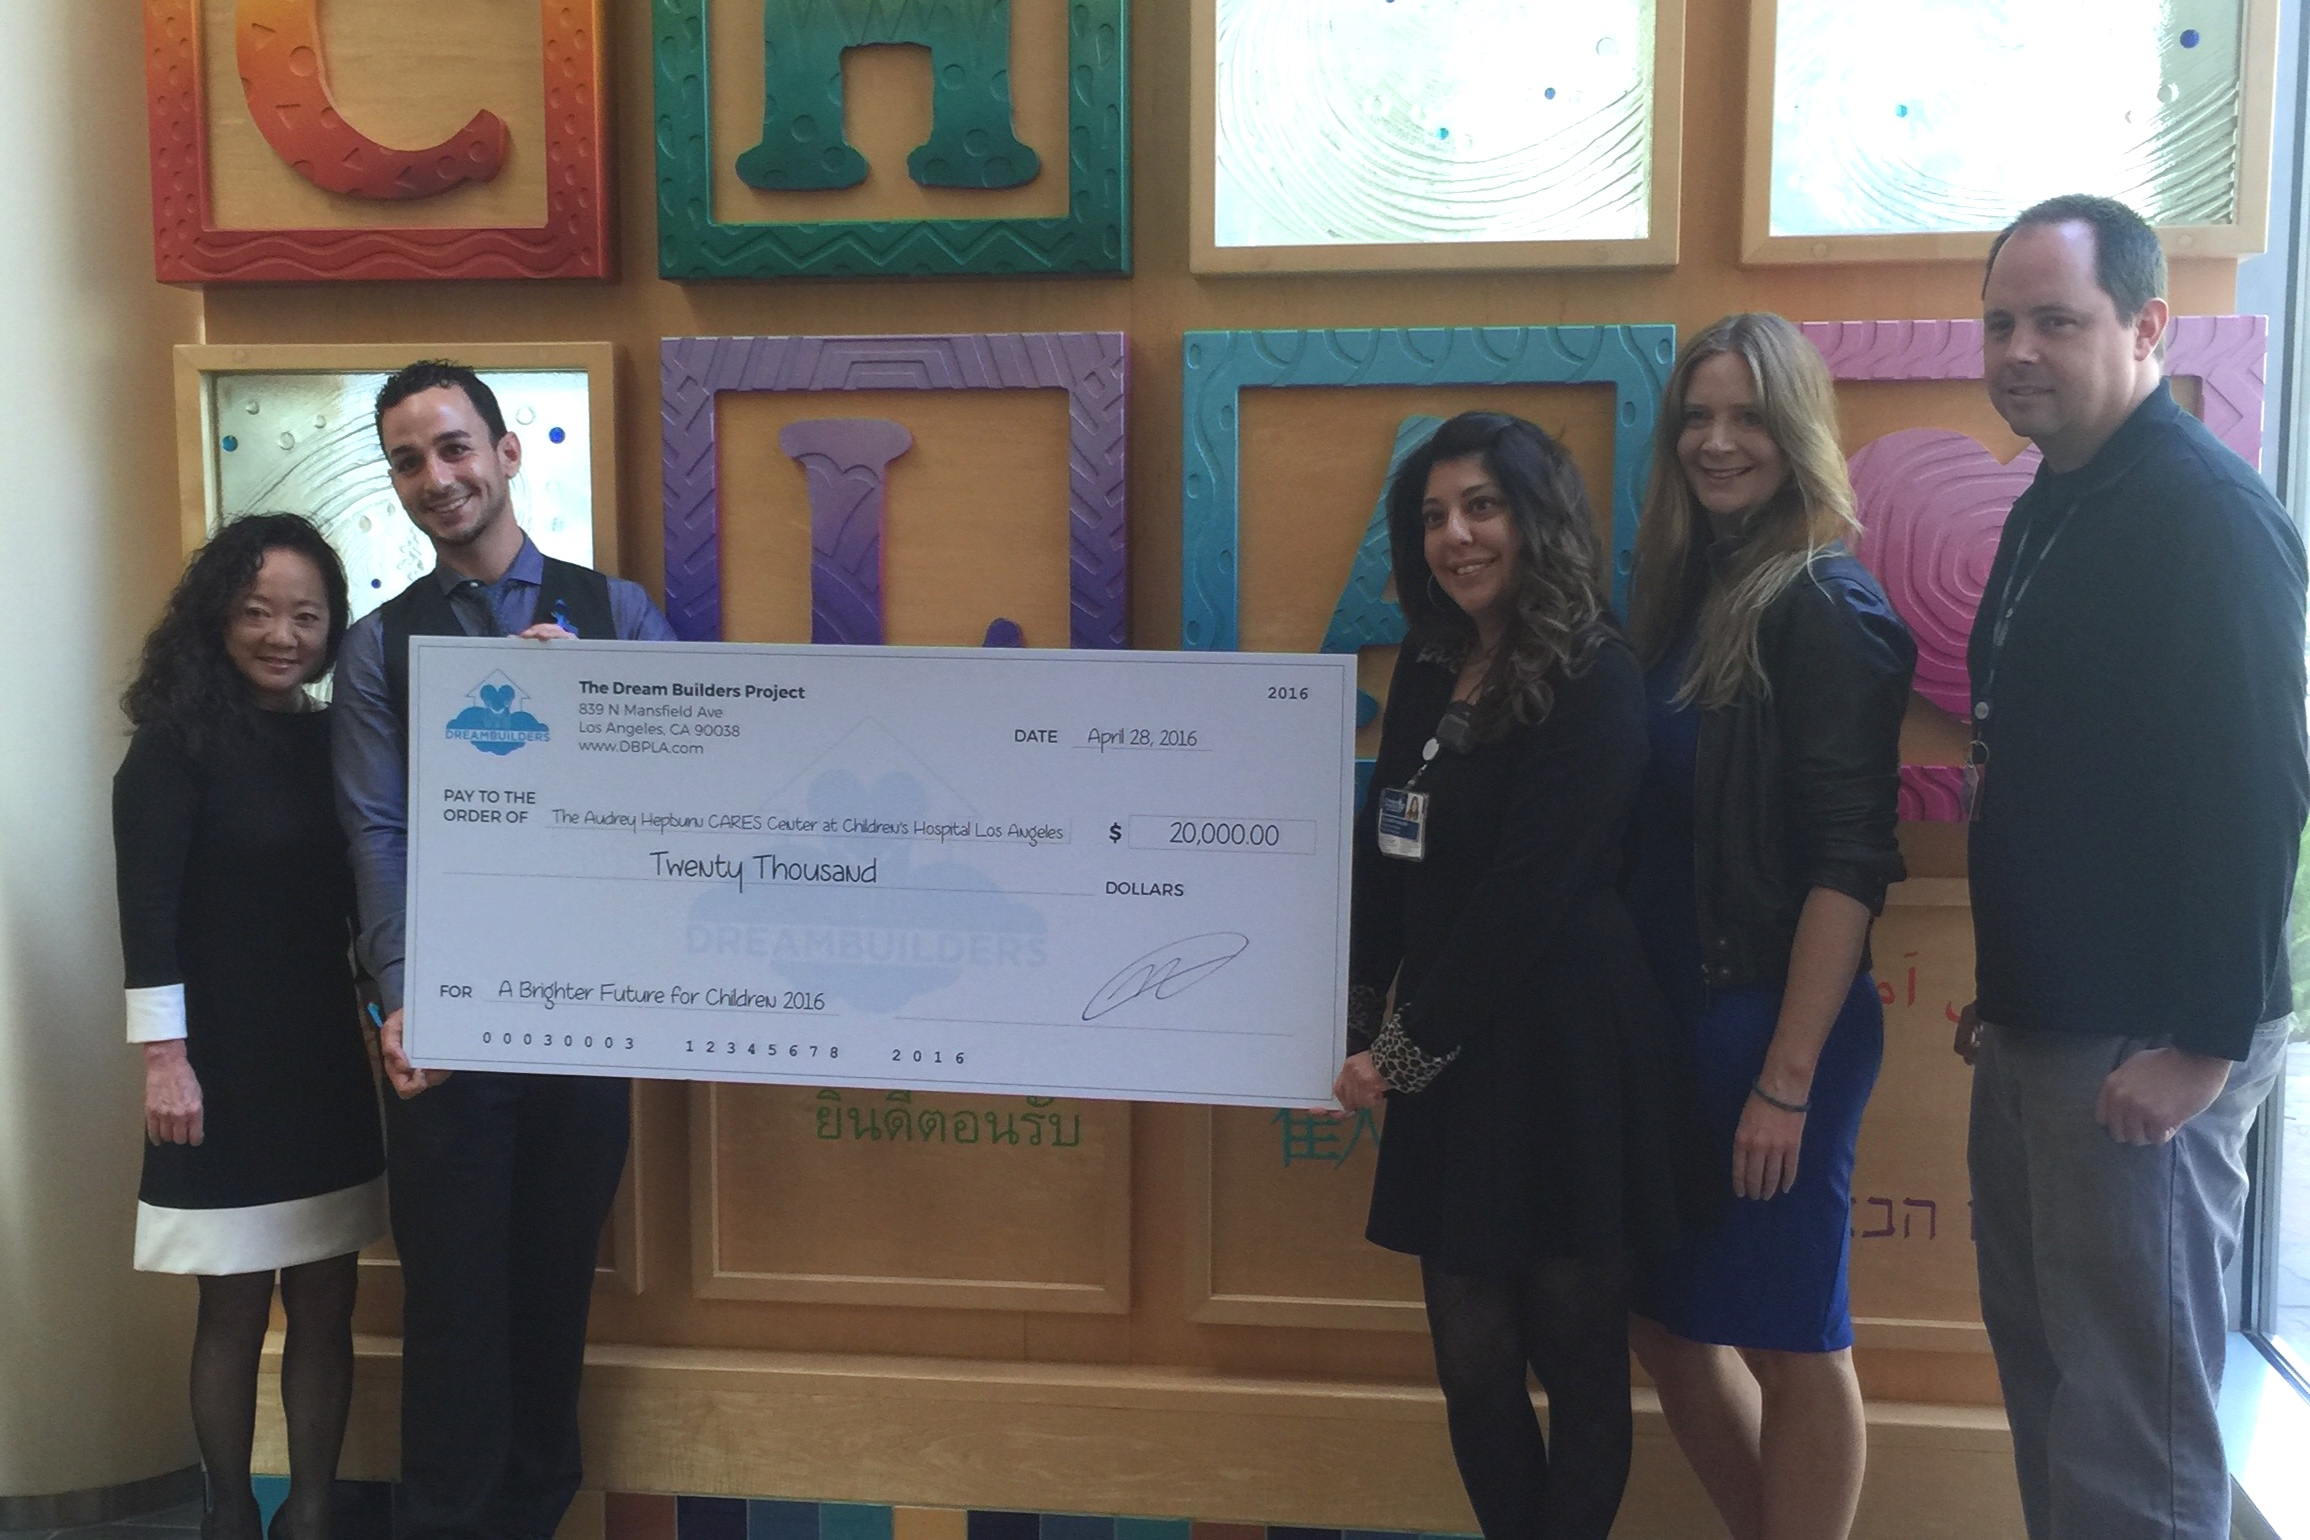 Presenting $20,000 to children's hospital los angeles -